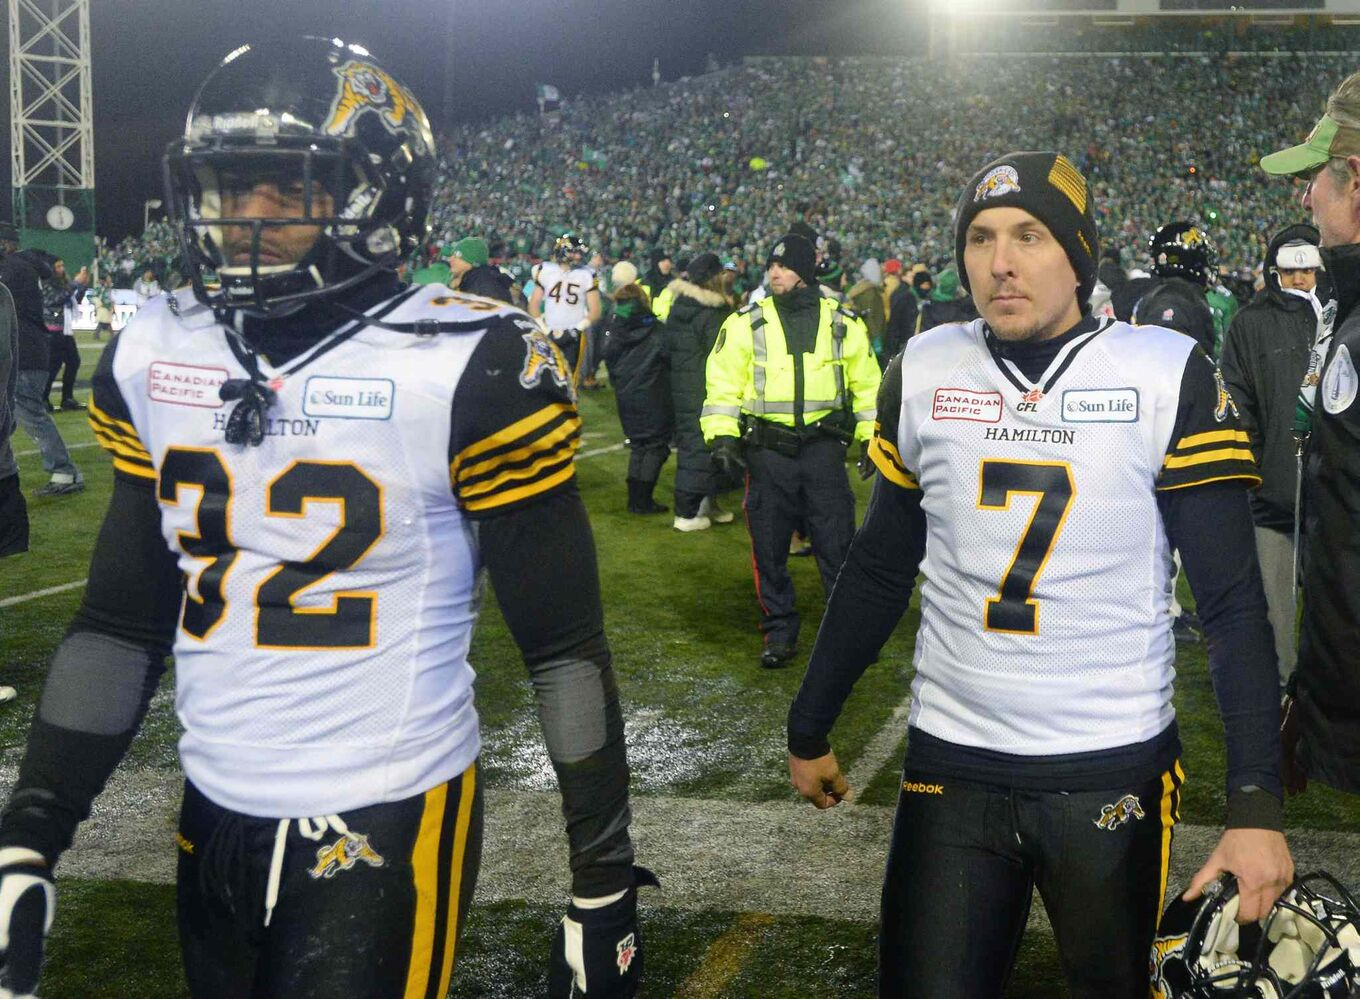 Hamilton Tiger-Cats running back C.J. Gable (left) and kicker Luca Congi walk off the field after losing to the Saskatchewan Roughriders. (Liam Richards / The Canadian Press)